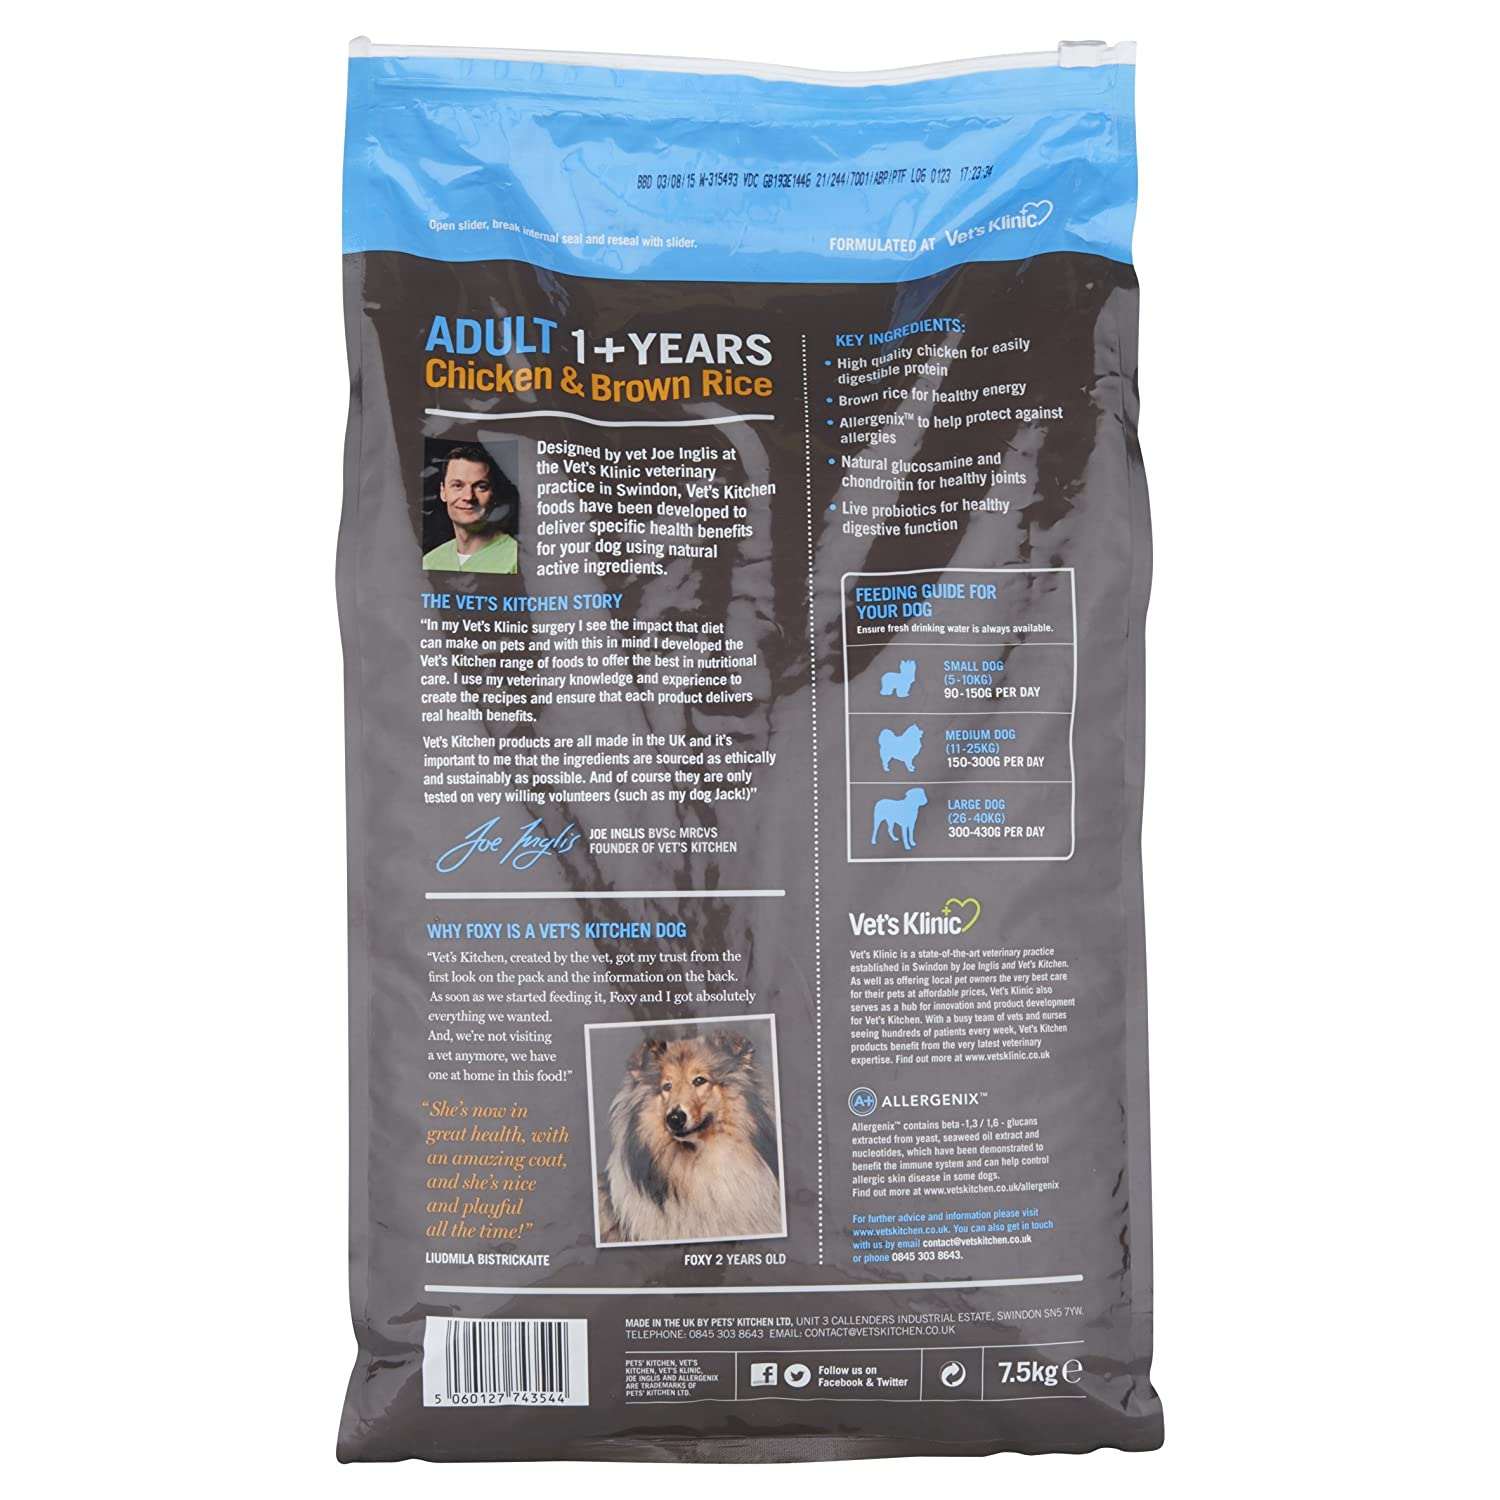 Vet S Kitchen Chicken And Brown Rice Complete Dog Food 3kg Amazon